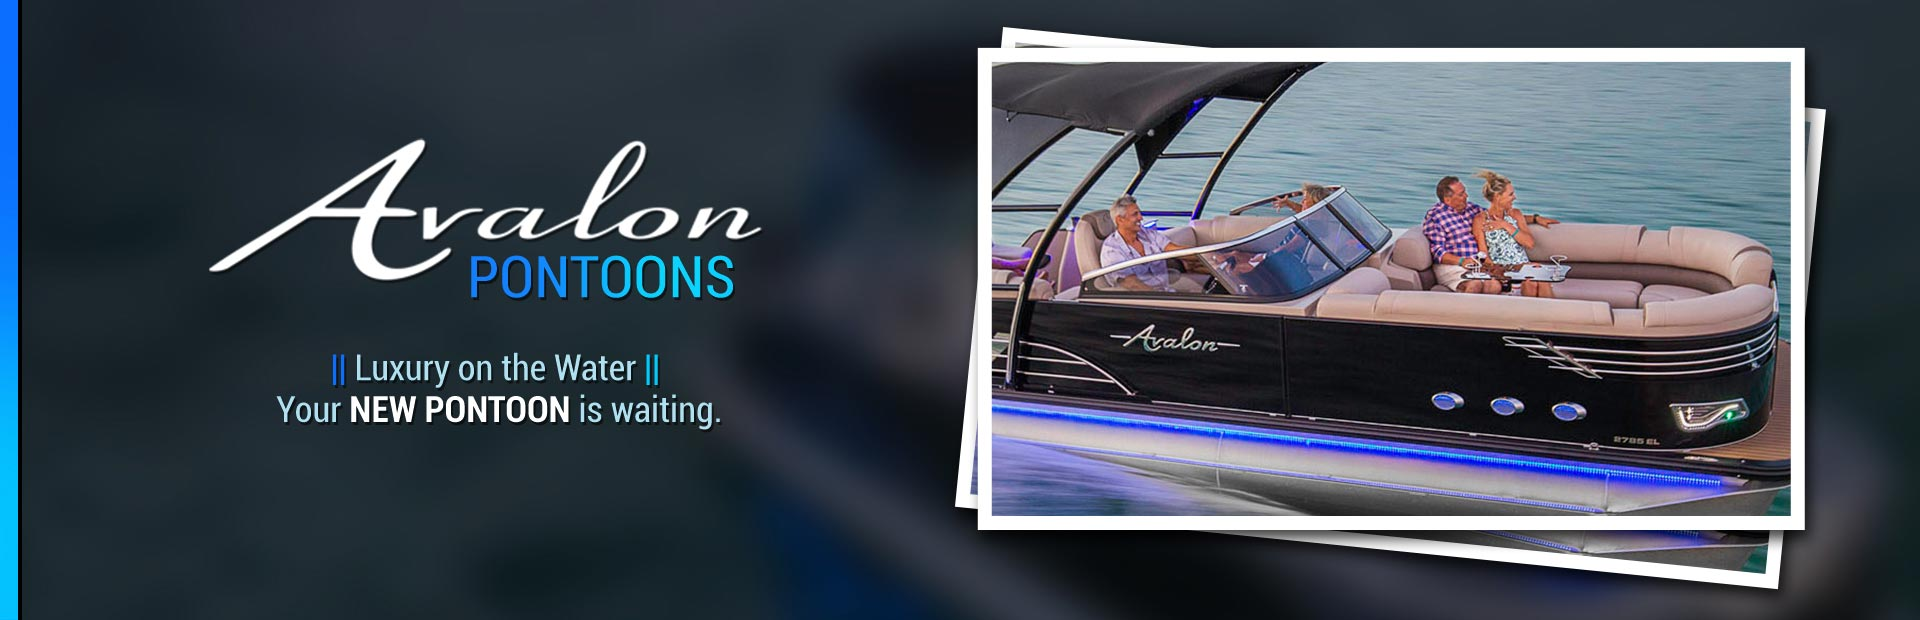 Avalon Pontoons: Click here to browse the models.